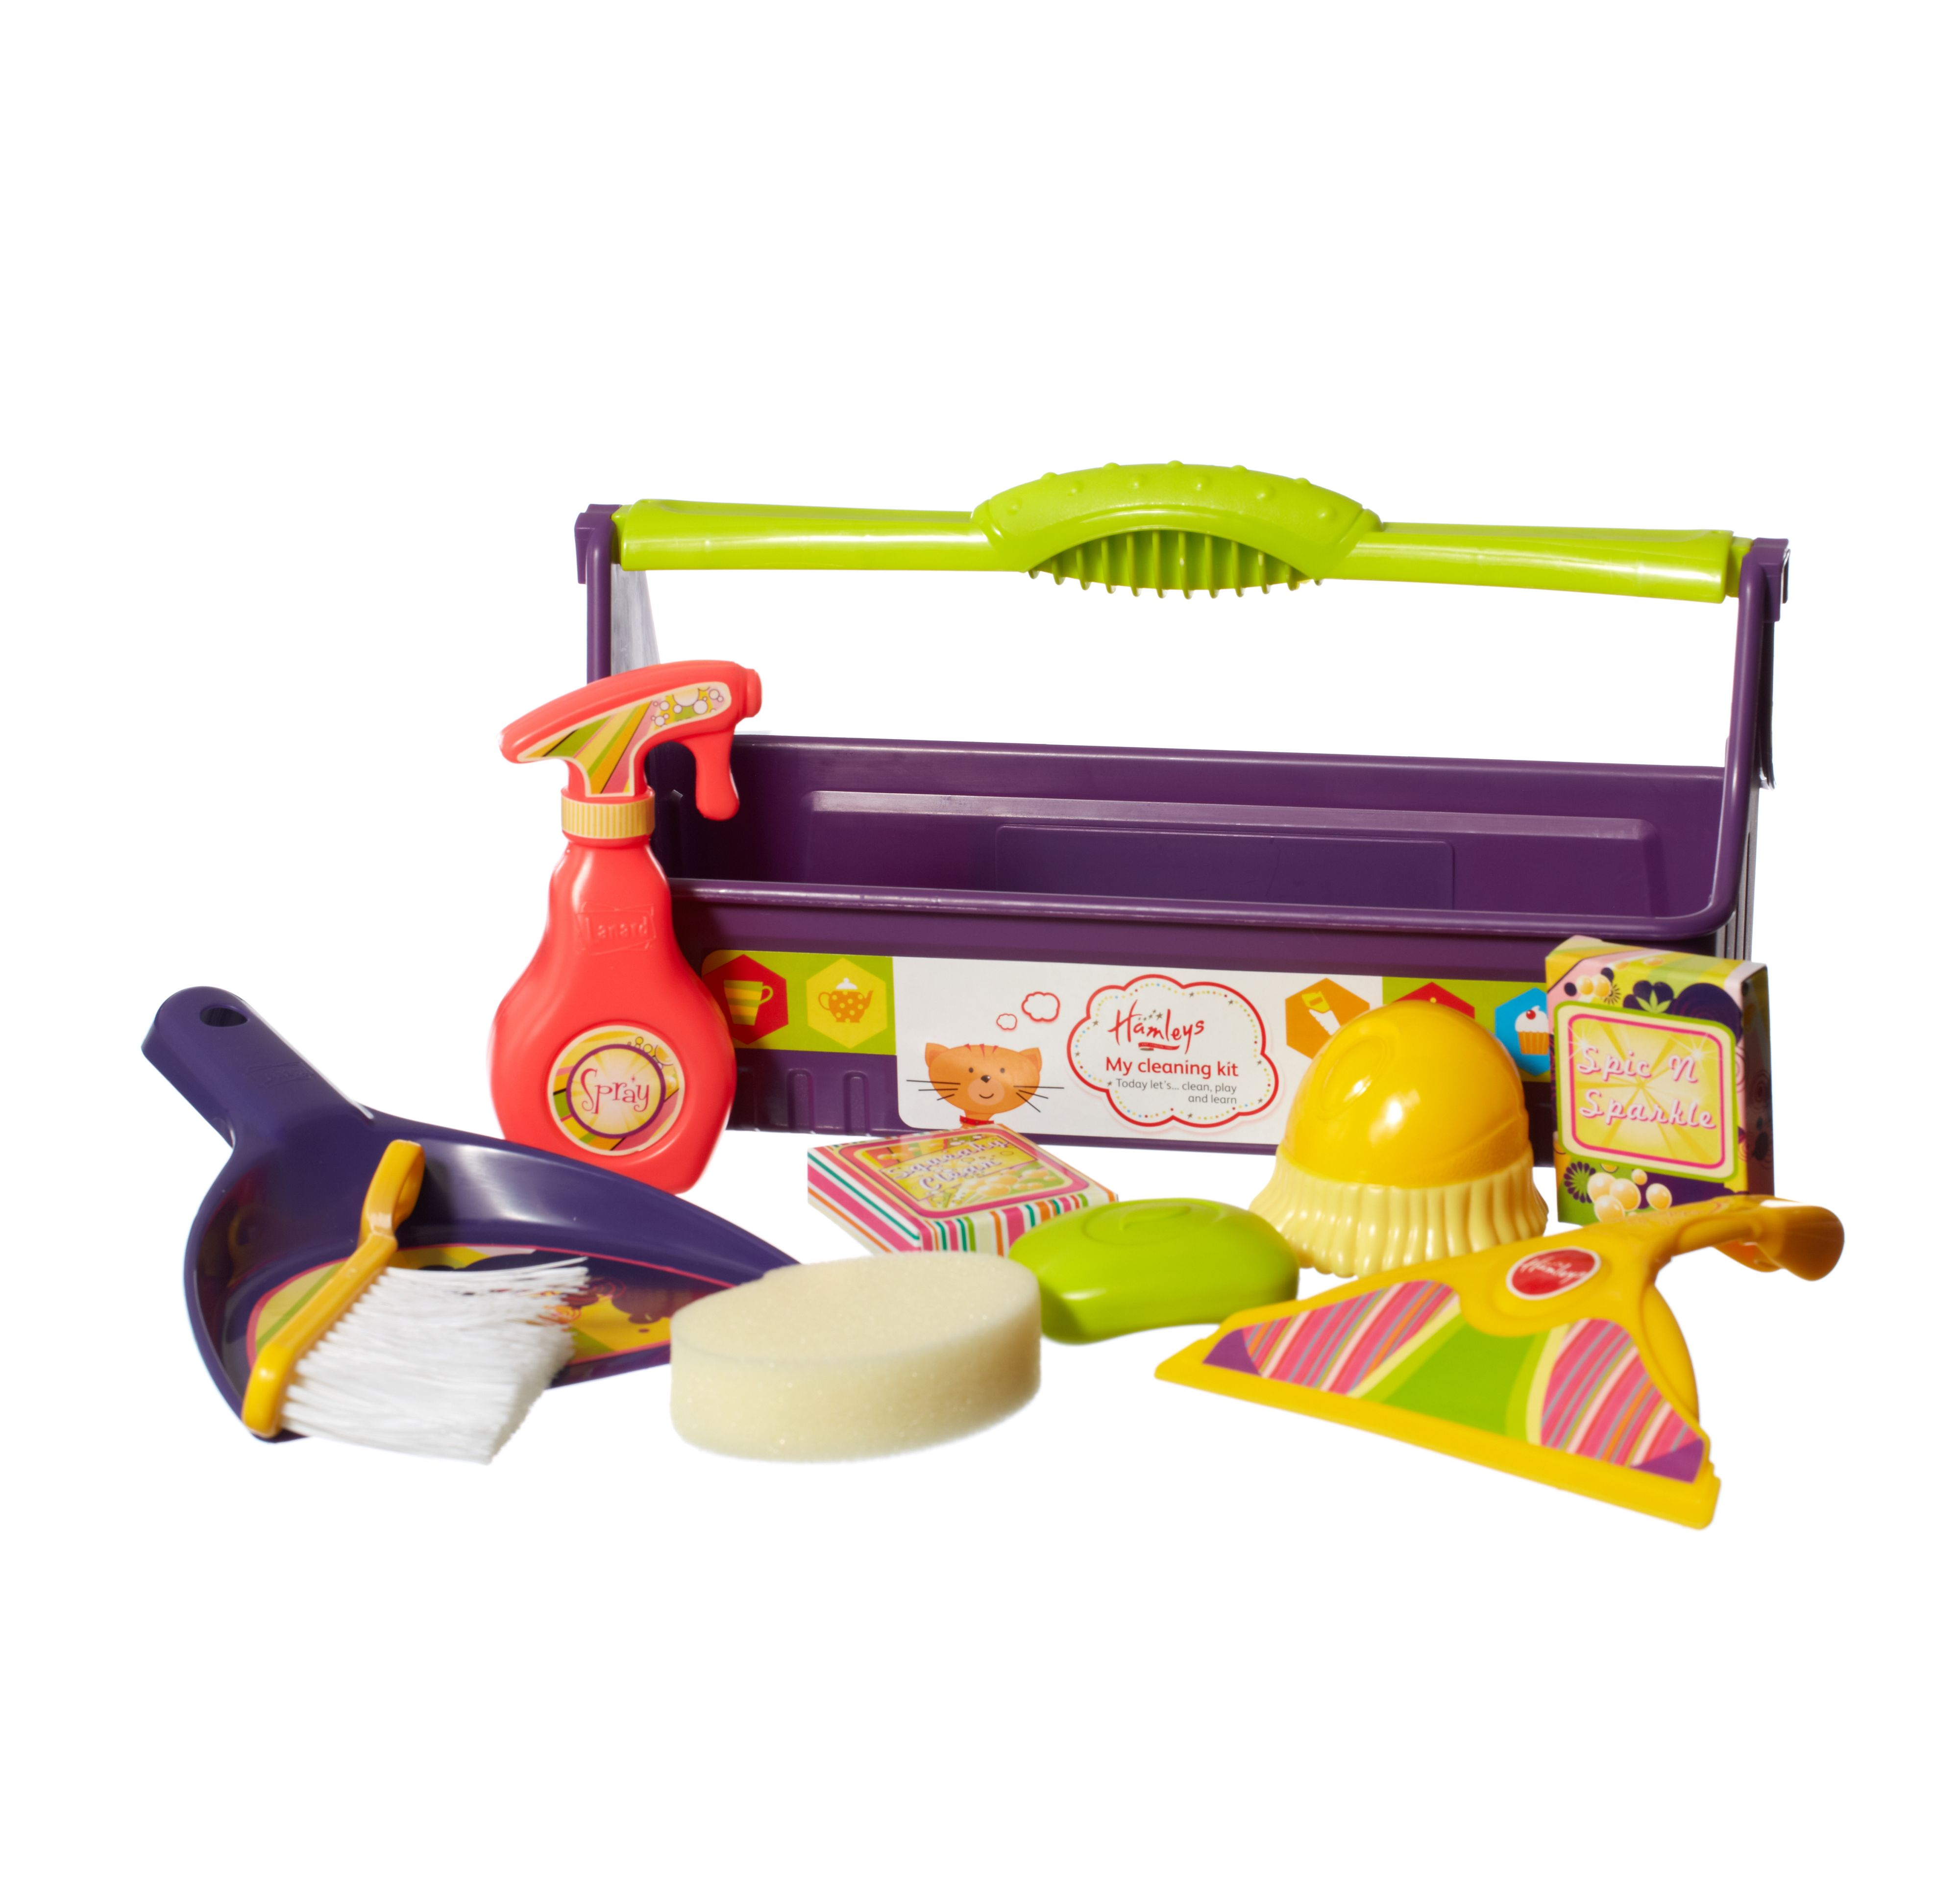 Hamleys My Cleaning Kit